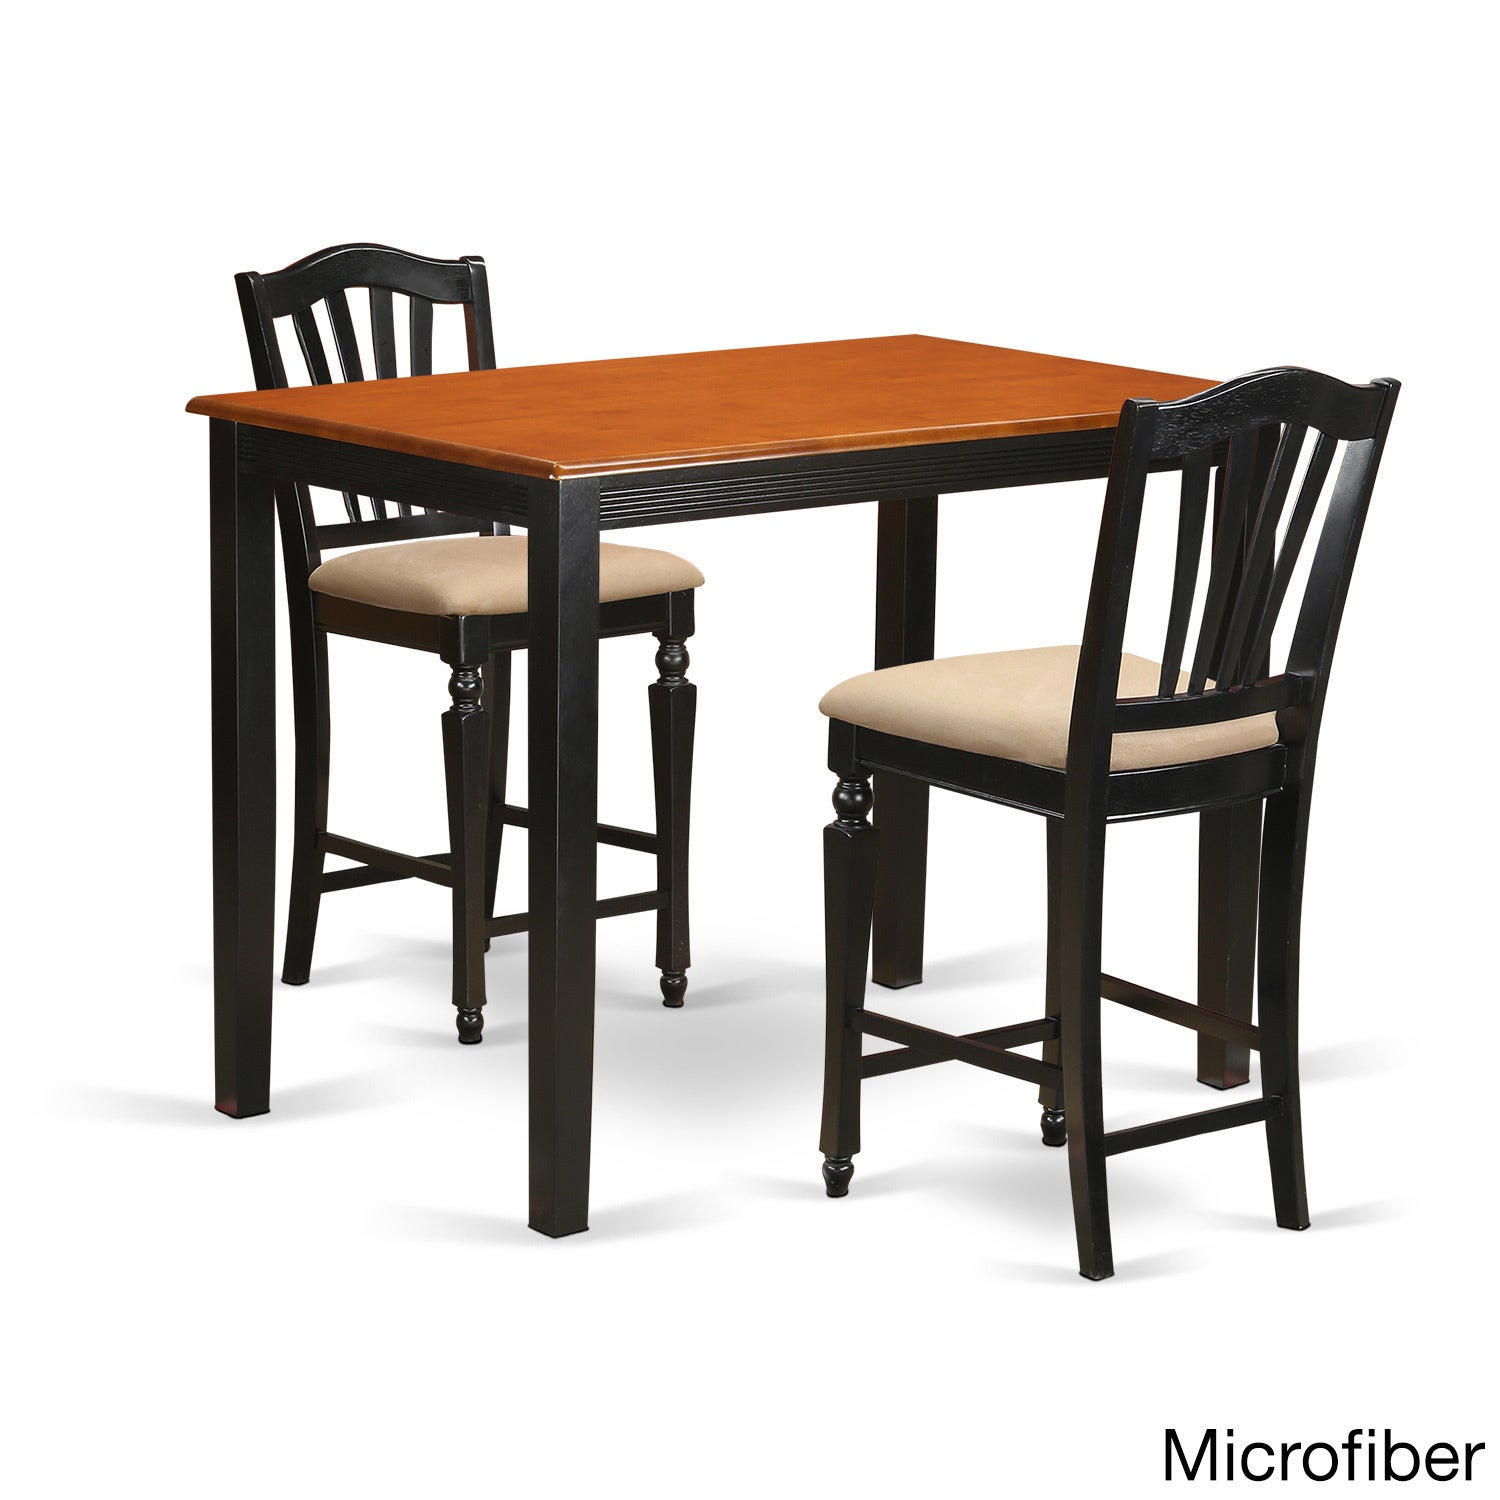 Black/Cherry Solid Wood 3-piece Counter Height Dining Set...